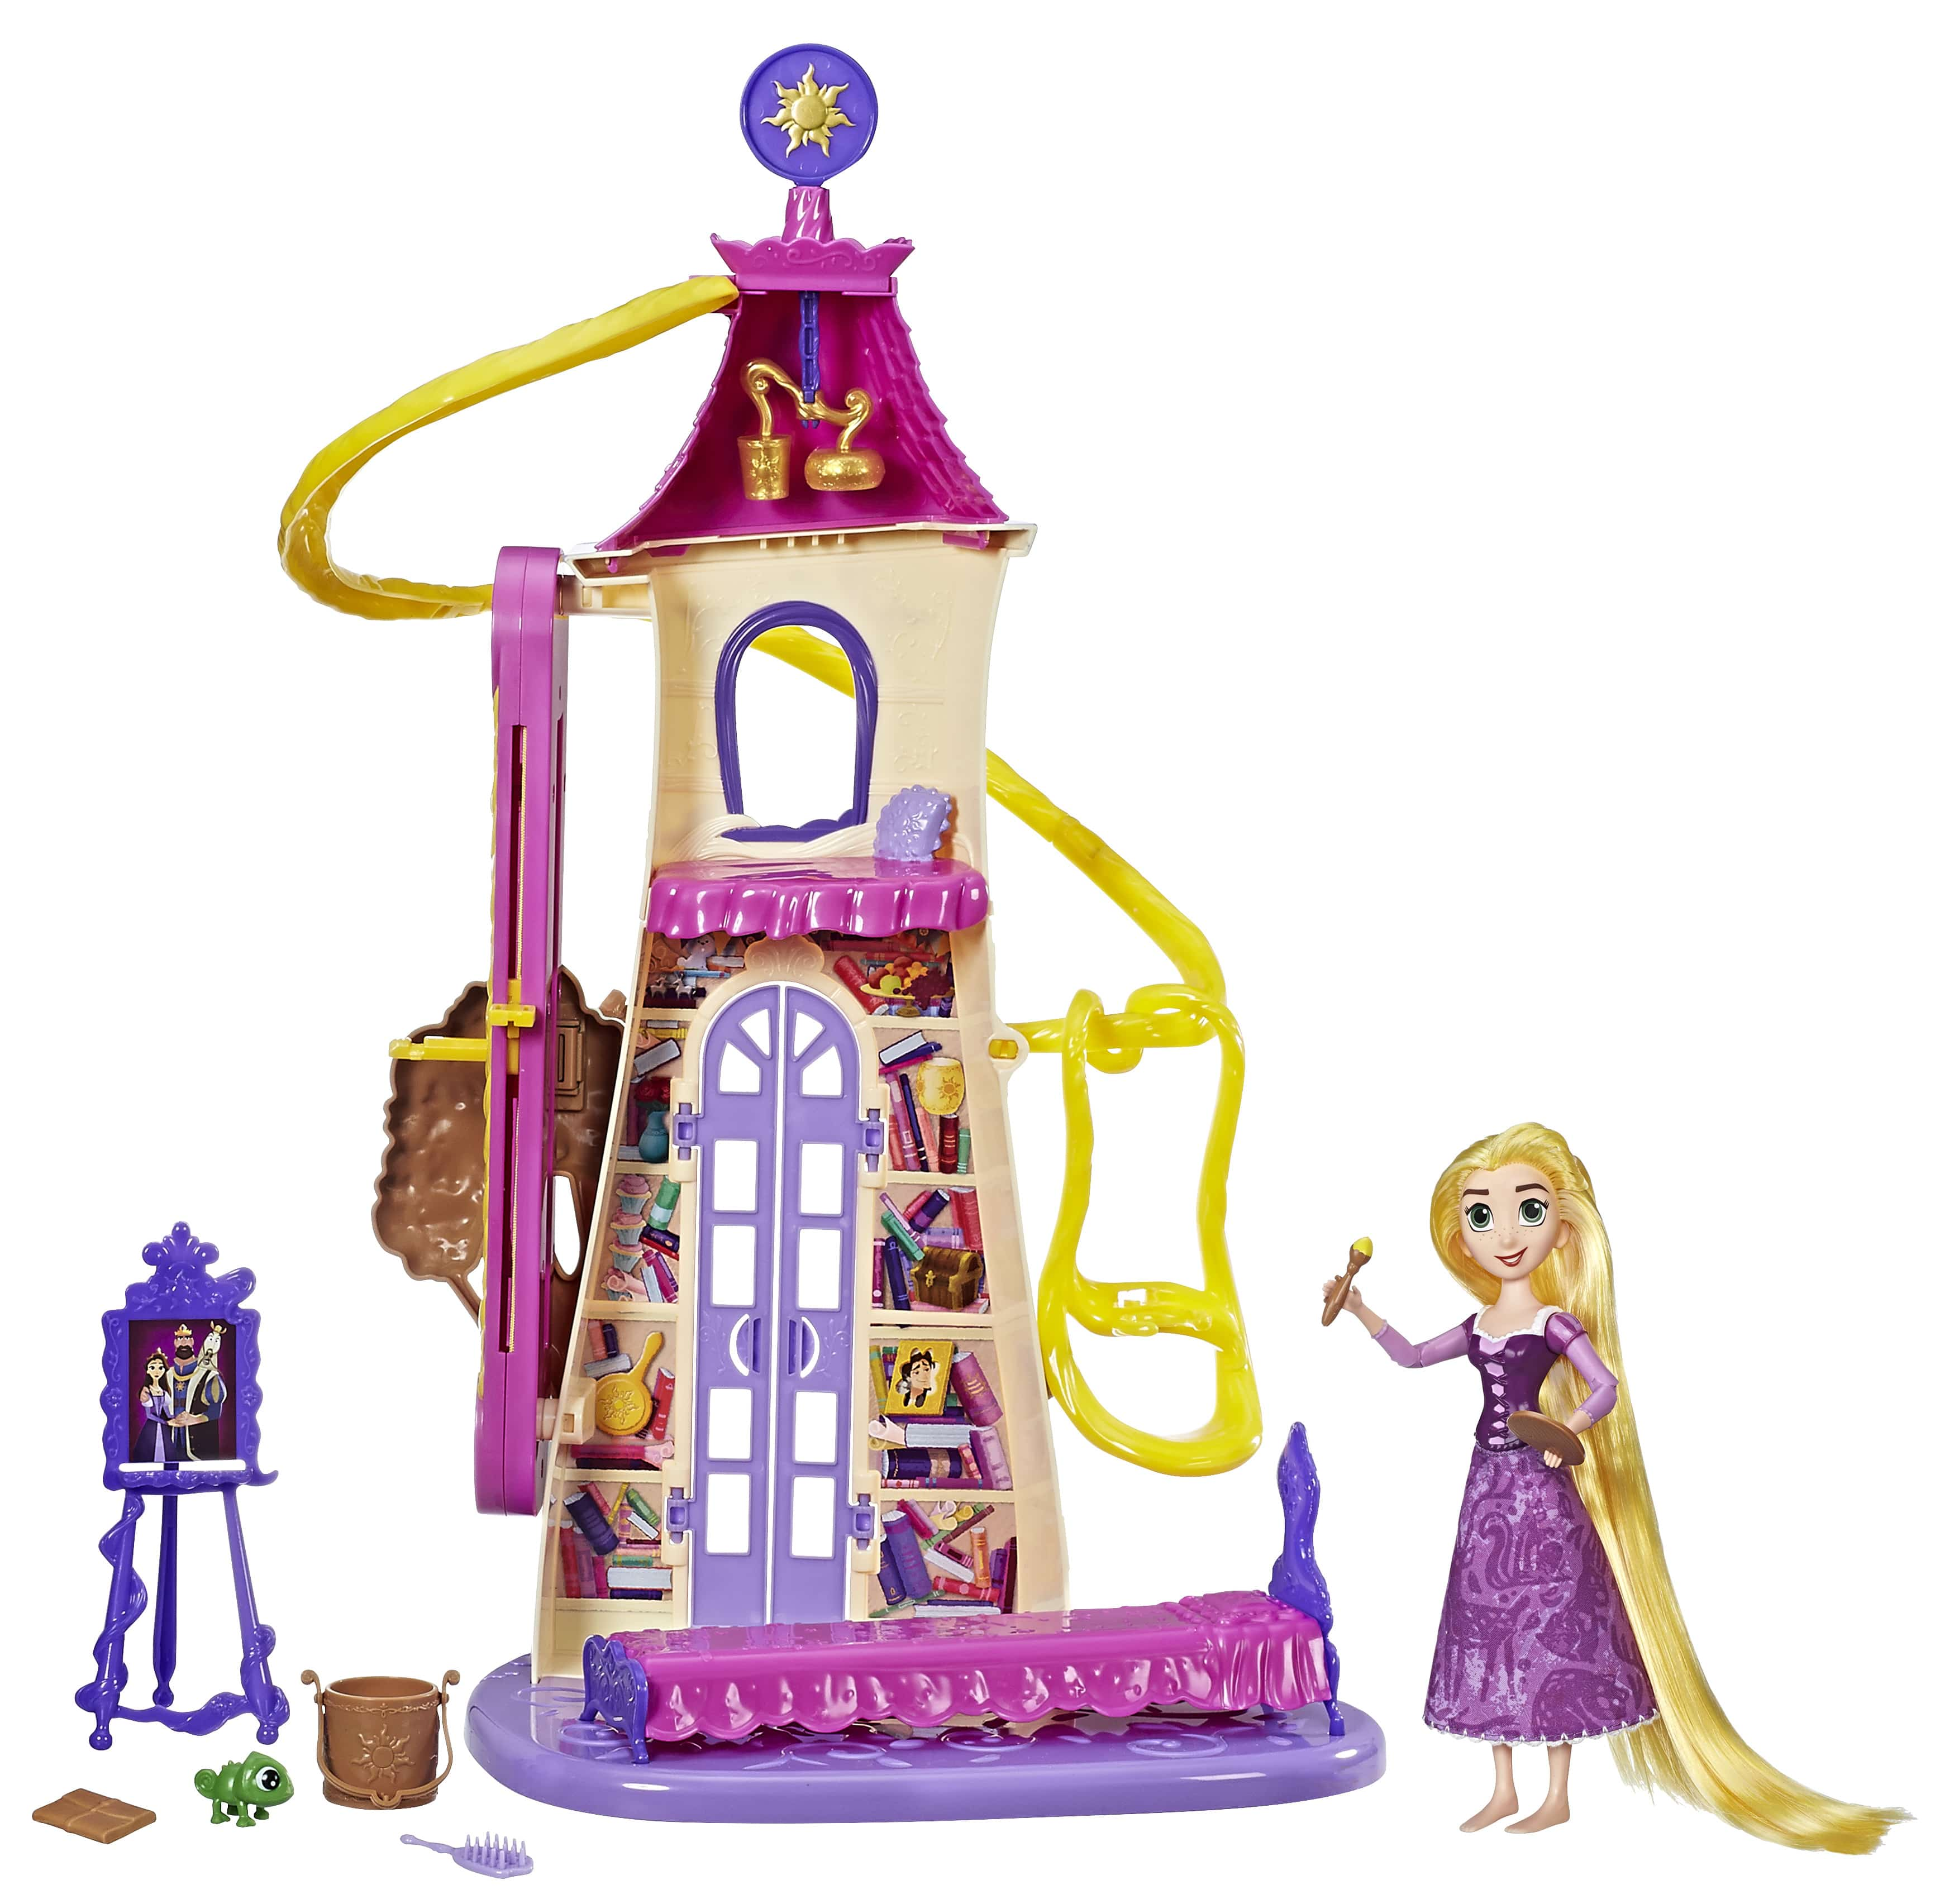 Disney's Tangled the Series Swinging Locks Castle Playset